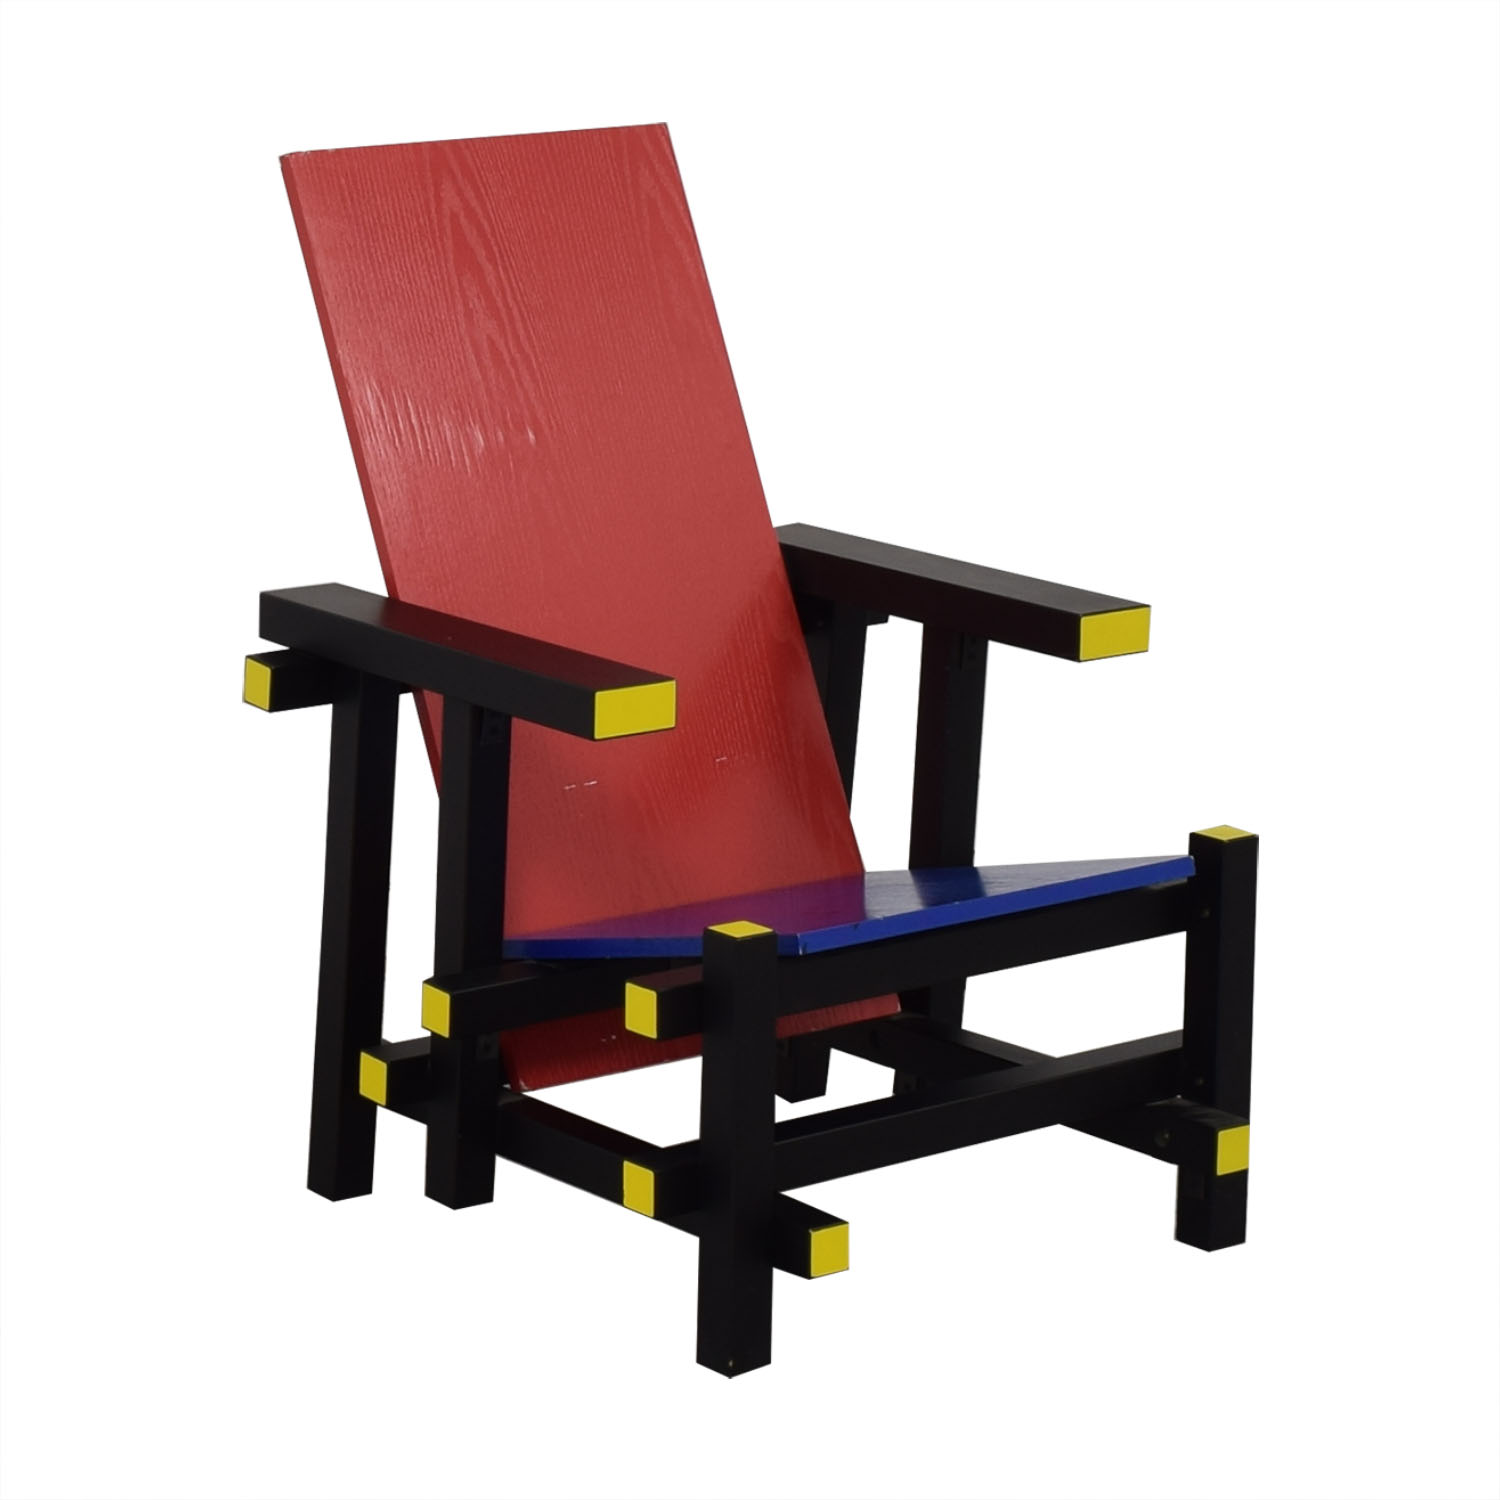 shop Control Brand Control Brand Rietveld-Style Mid Century Lounge Chair online